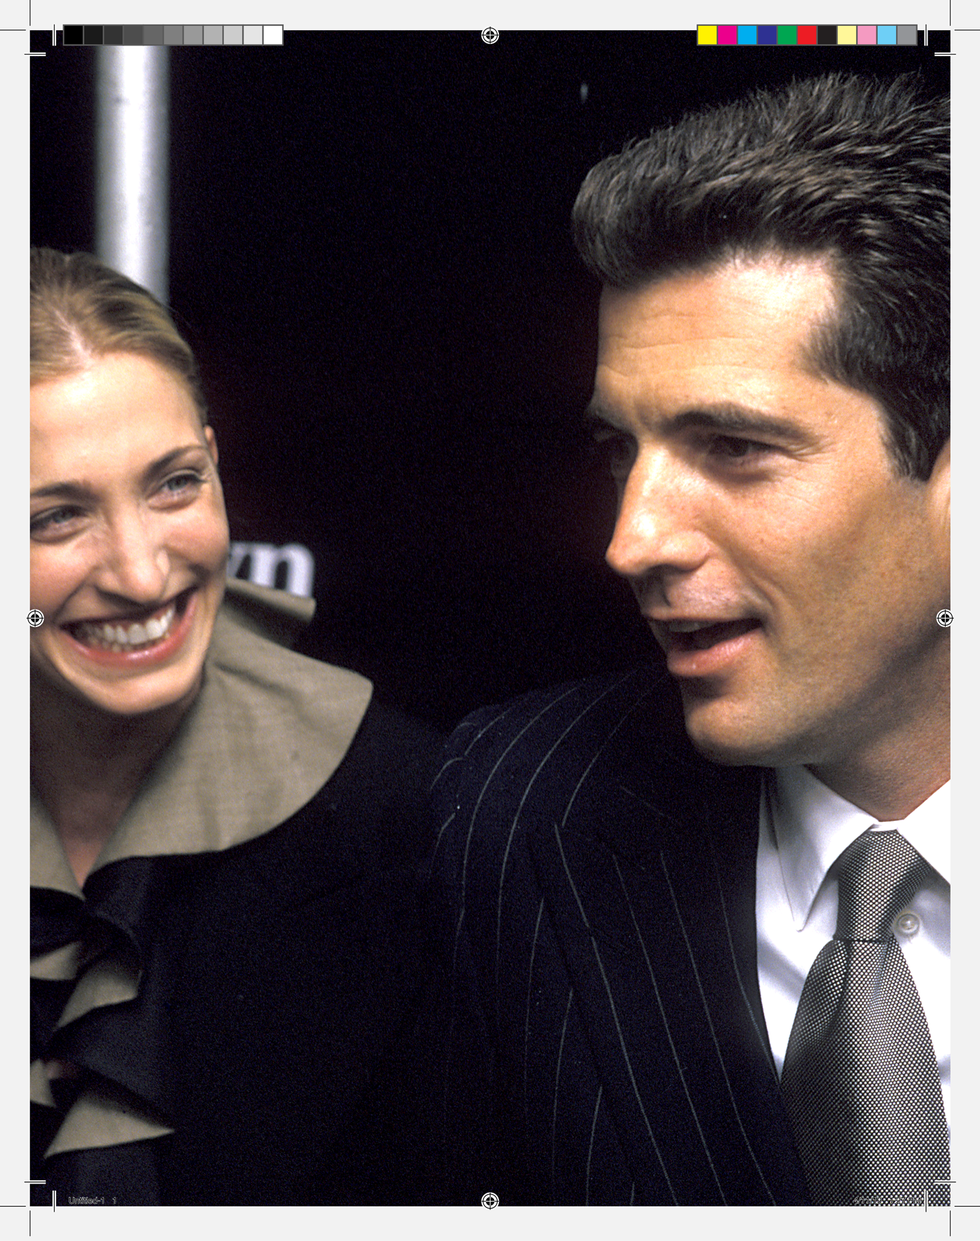 Kennedy and Carolyn Bessette were married in the fall of 1996 without most of the George staff knowing about it.